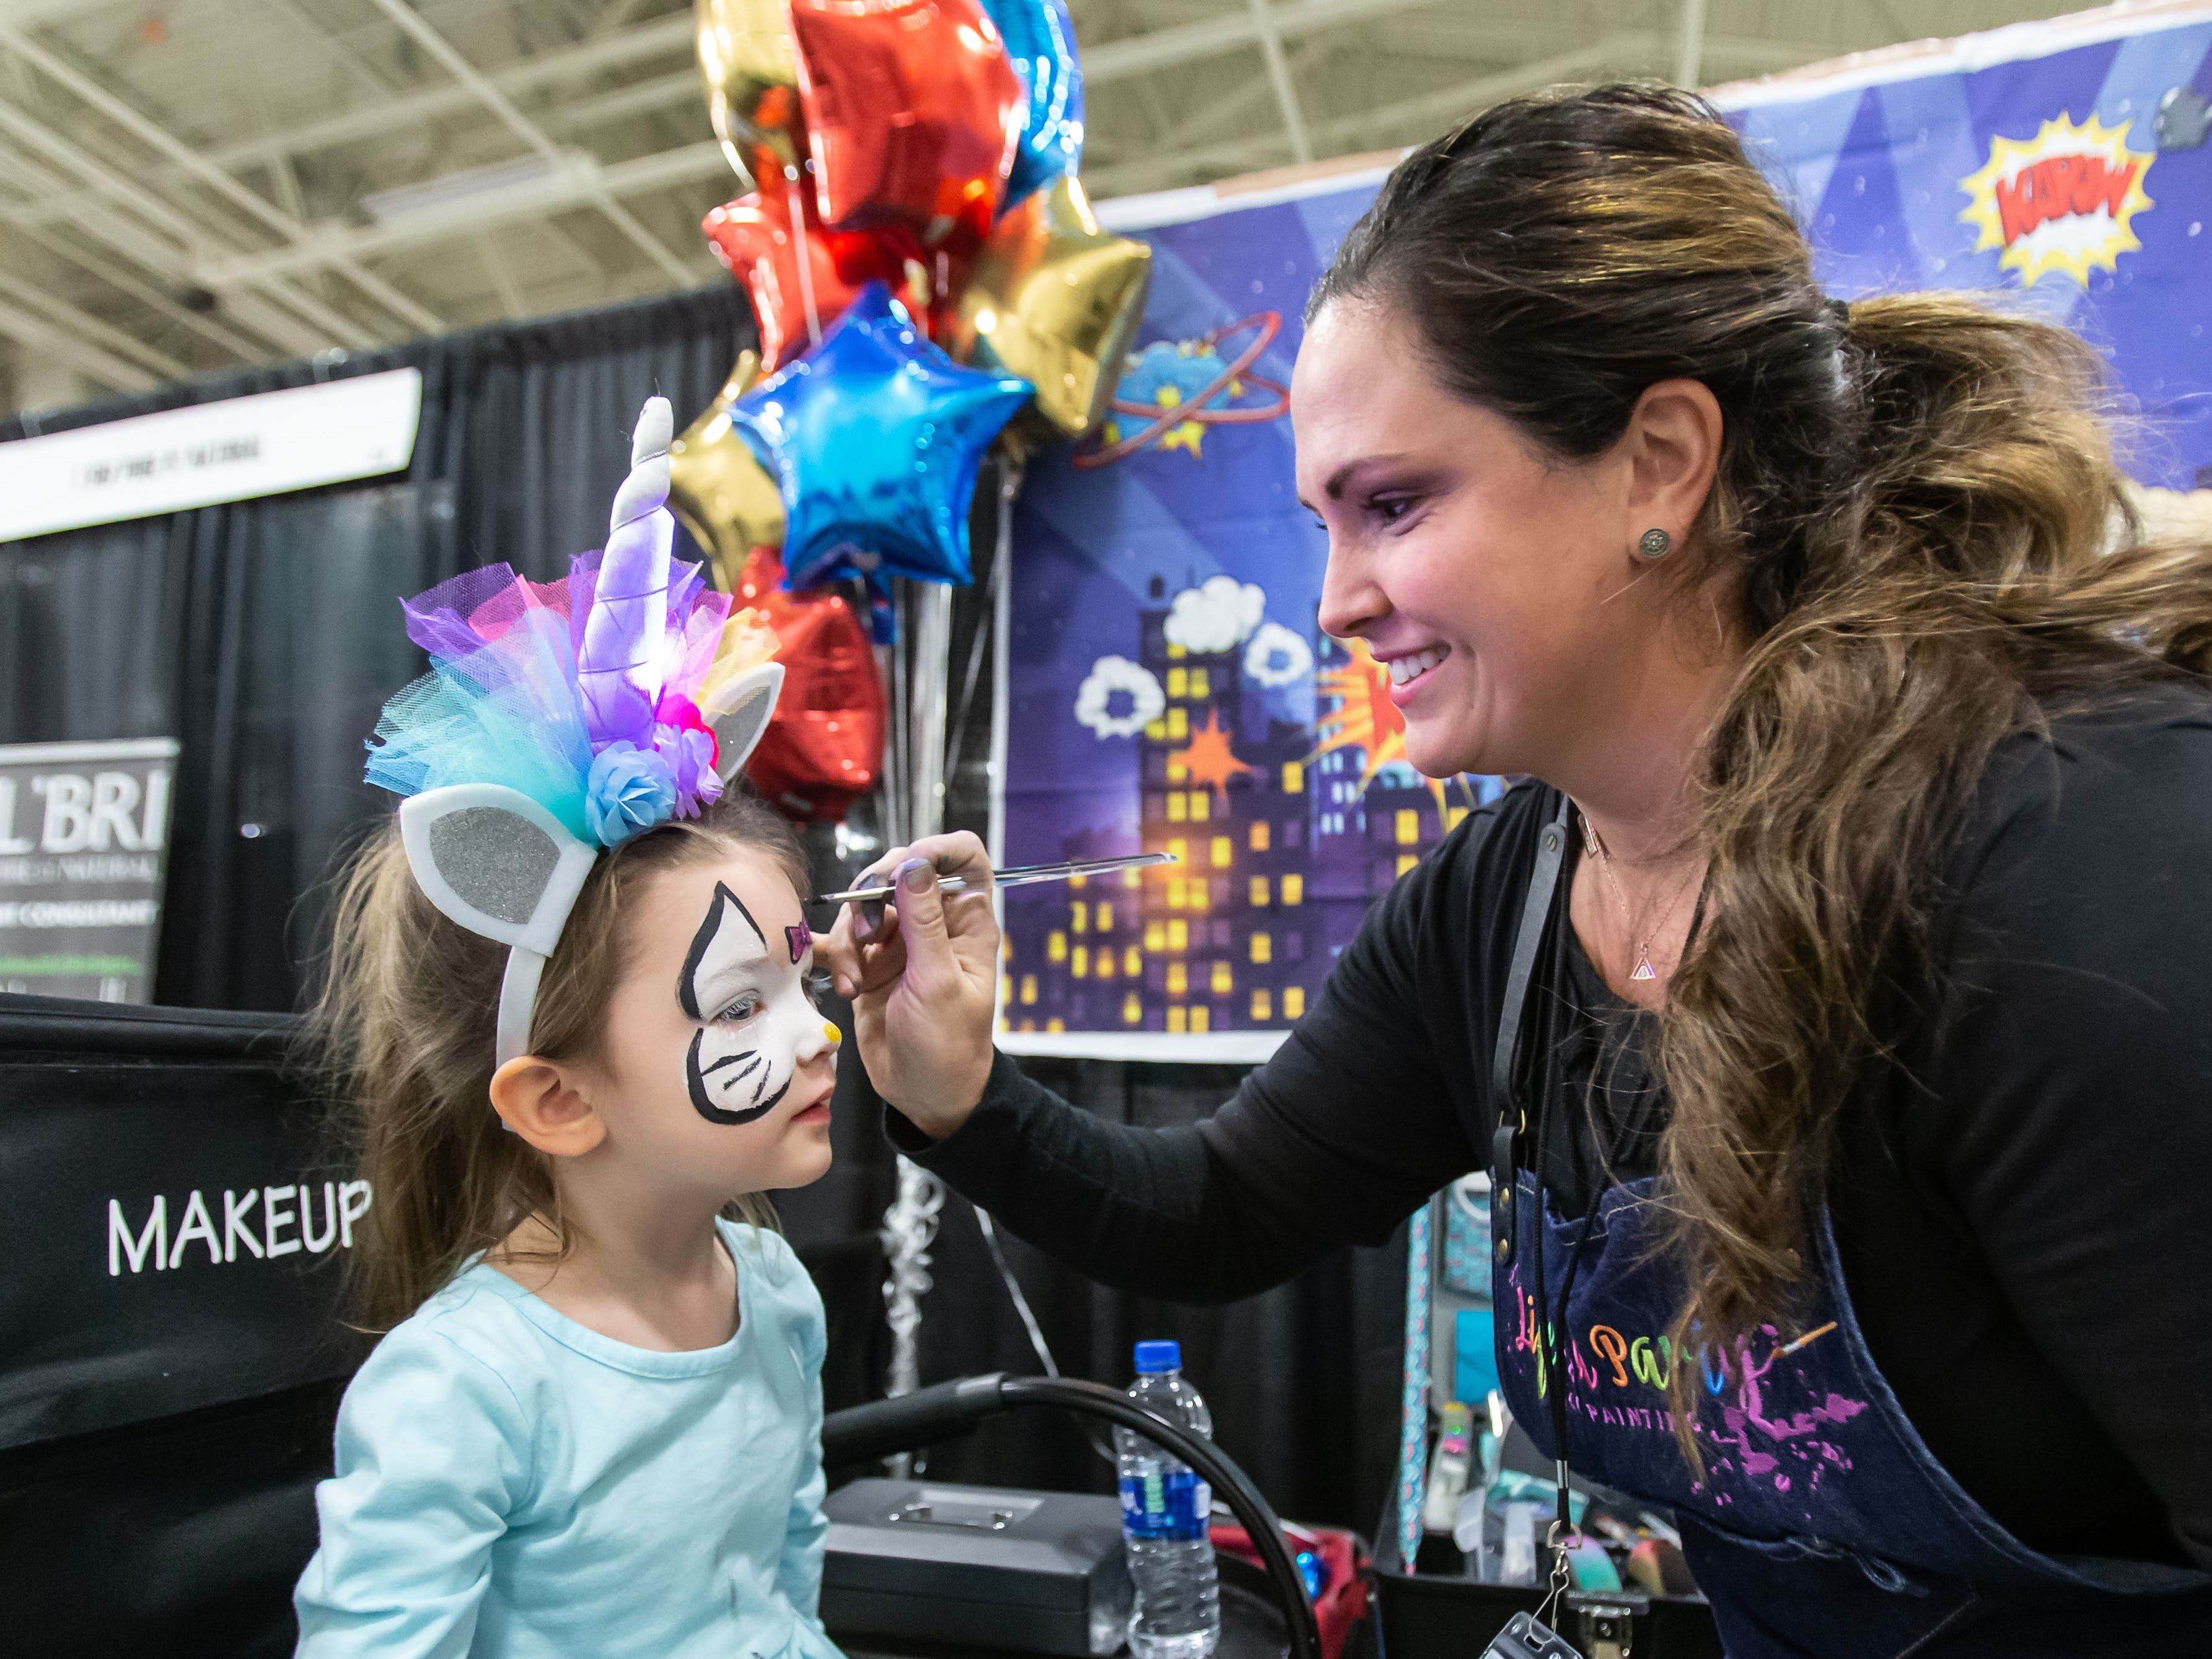 Three-year-old Kaely Krakau of Franklin sits for a face painting by Oconomowoc artist Leea Woolard of Life's a Party - Face Painting during the Milwaukee Kids Expo at State Fair Park in West Allis on Sunday, Feb. 10, 2019. The two-day expo featured bounce houses, a petting zoo, a rock climbing wall, pony rides, caricature paintings, a maze challenge and much more.